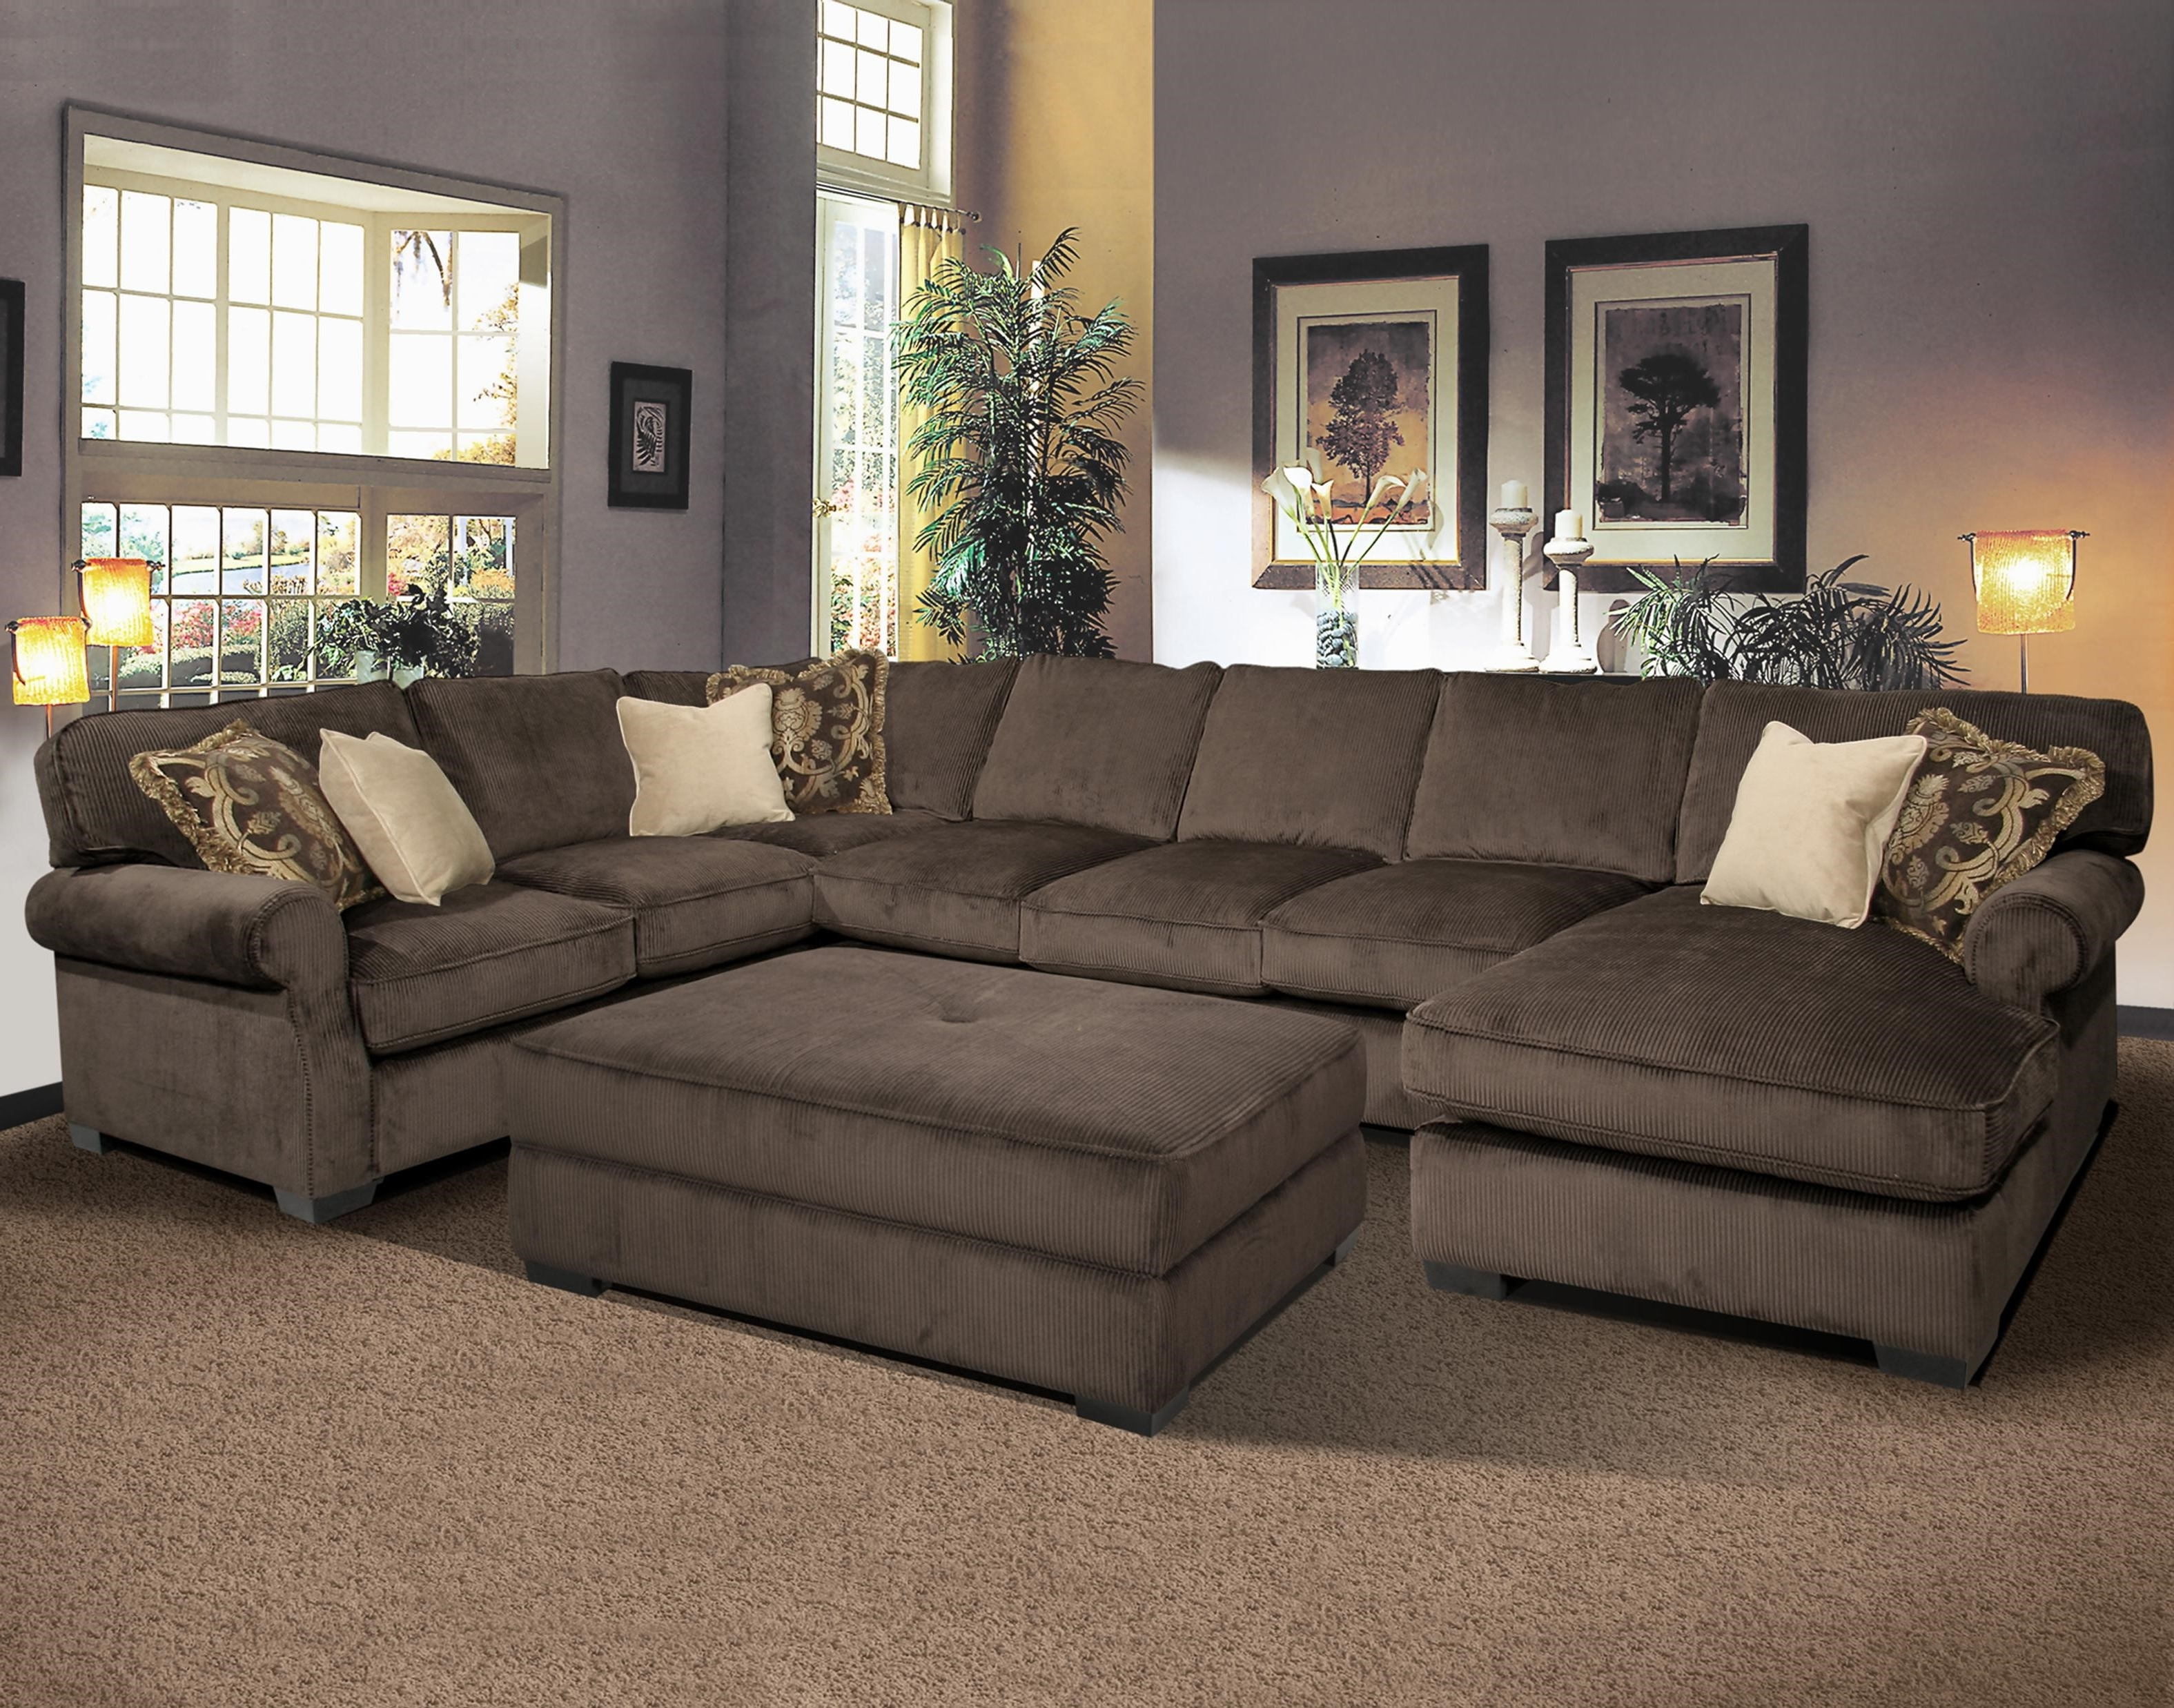 Furniture: Harbor Freight Furniture (View 11 of 20)